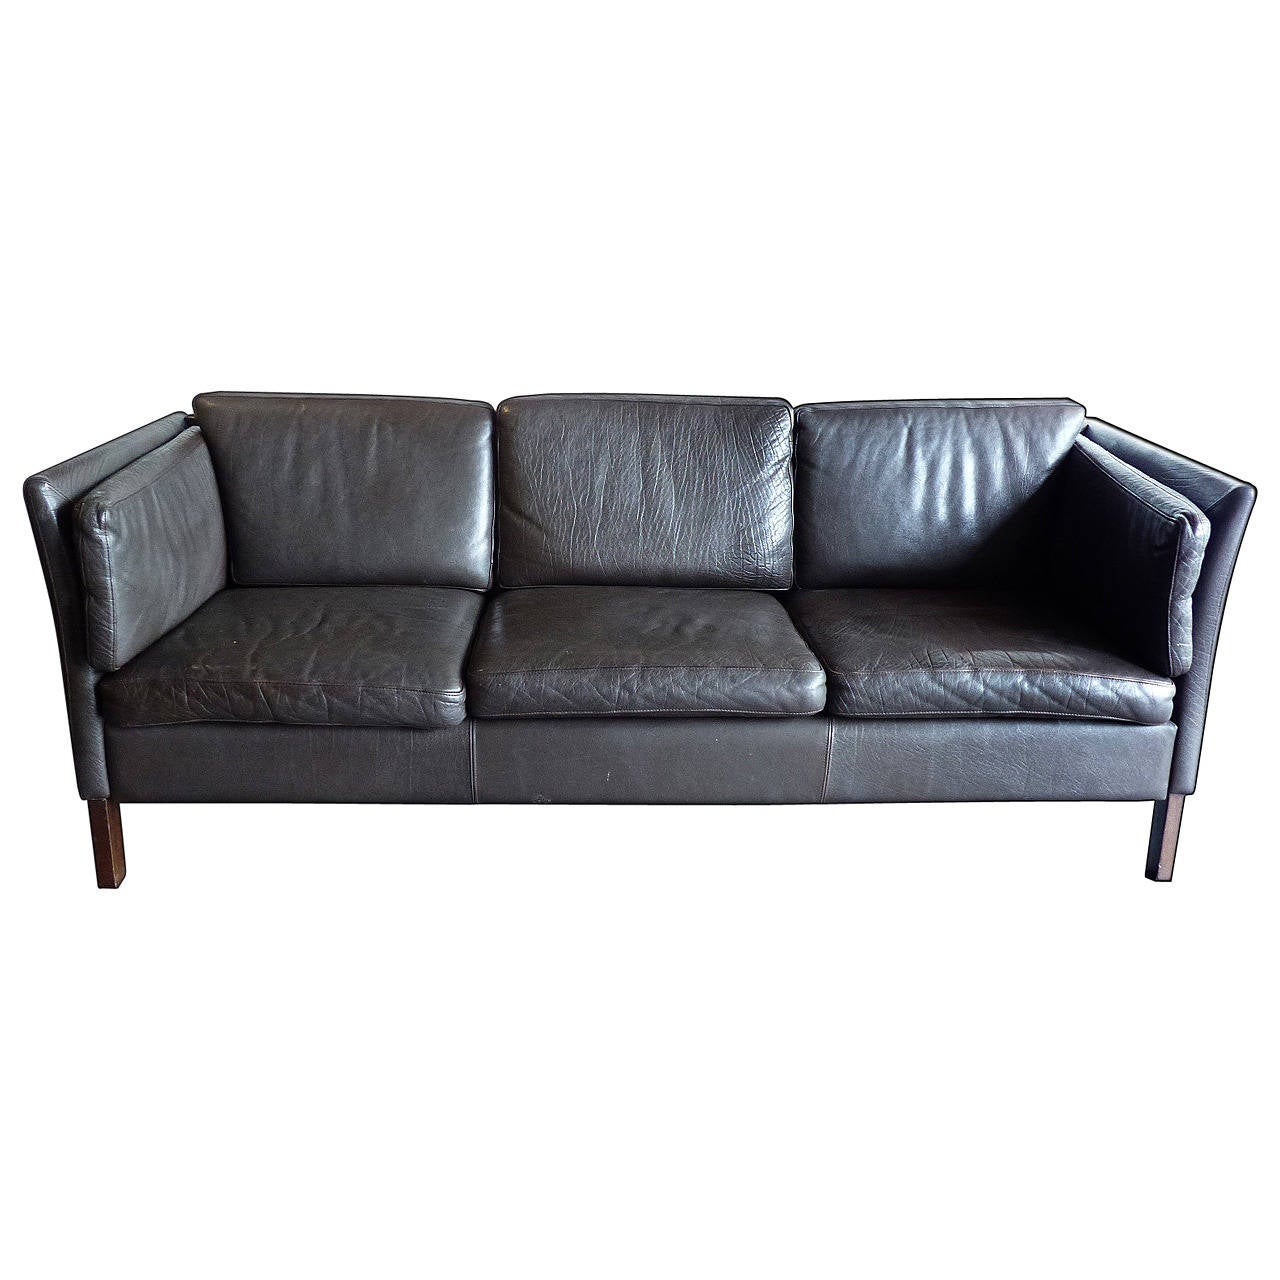 Leather mid century modern sofa at 1stdibs for Mid century modern sofas